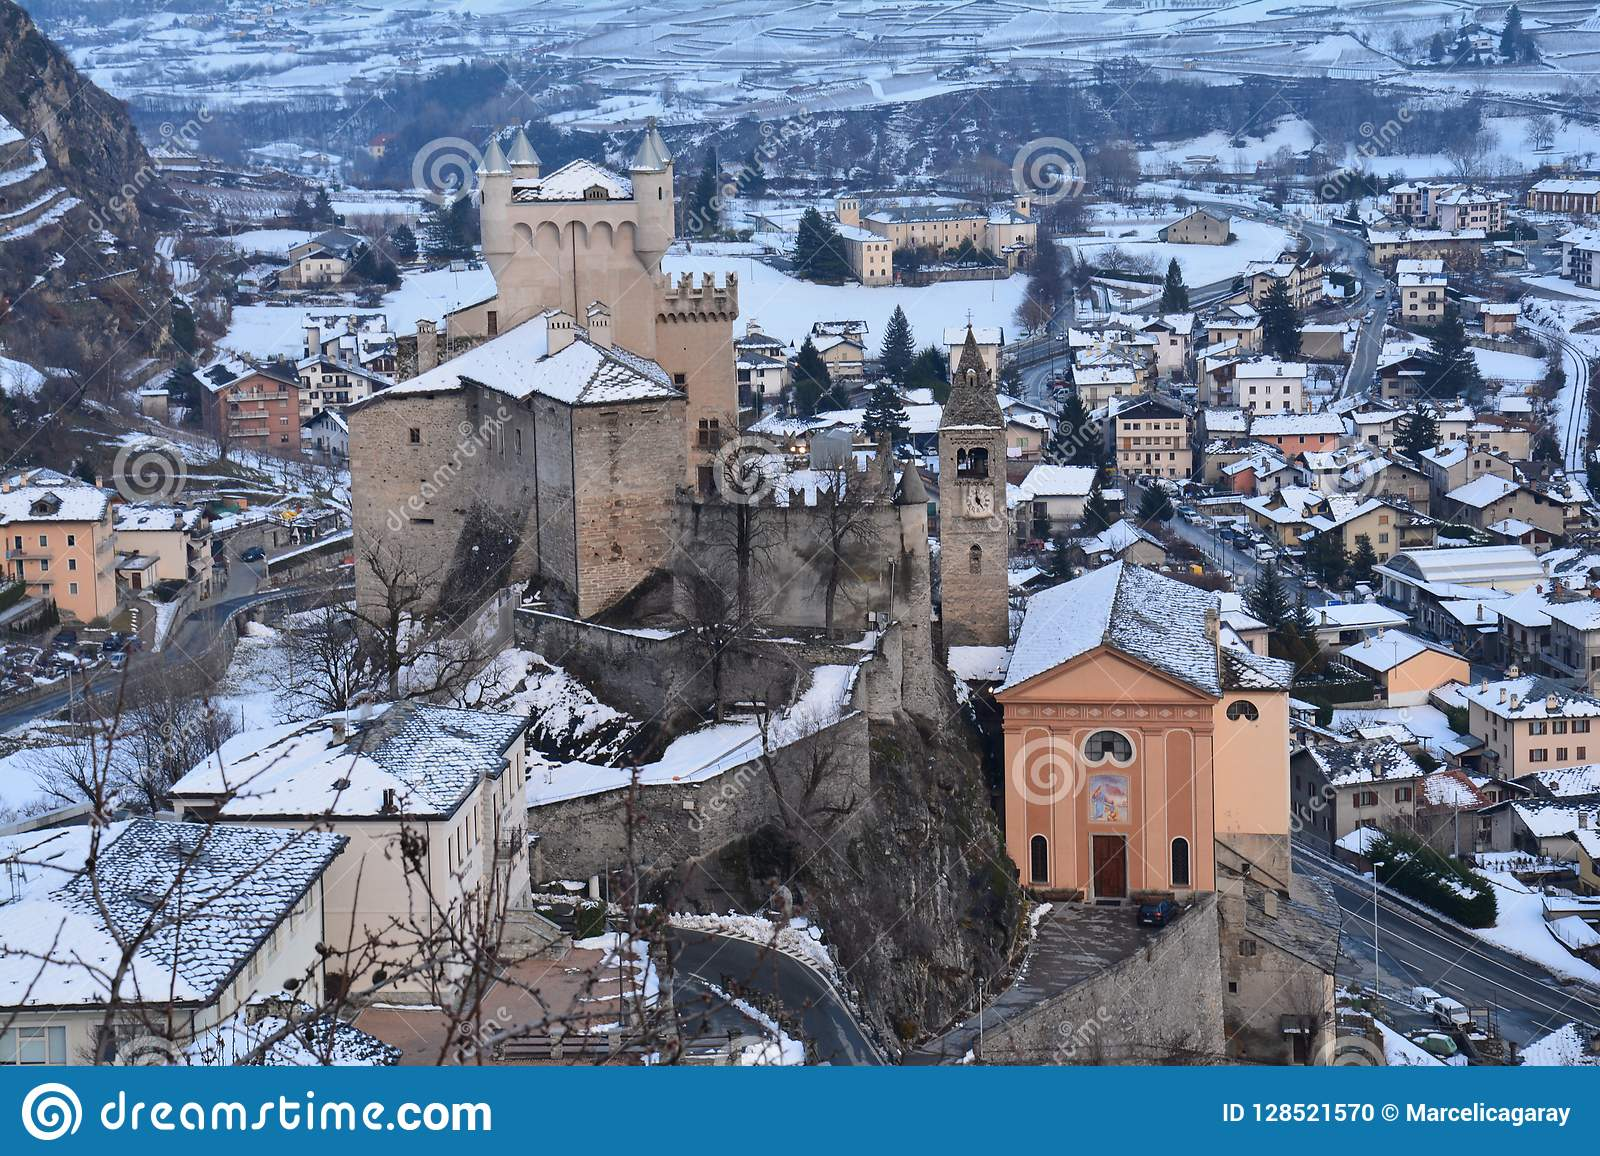 Castles of the Aoste Valley in Italy in Winter